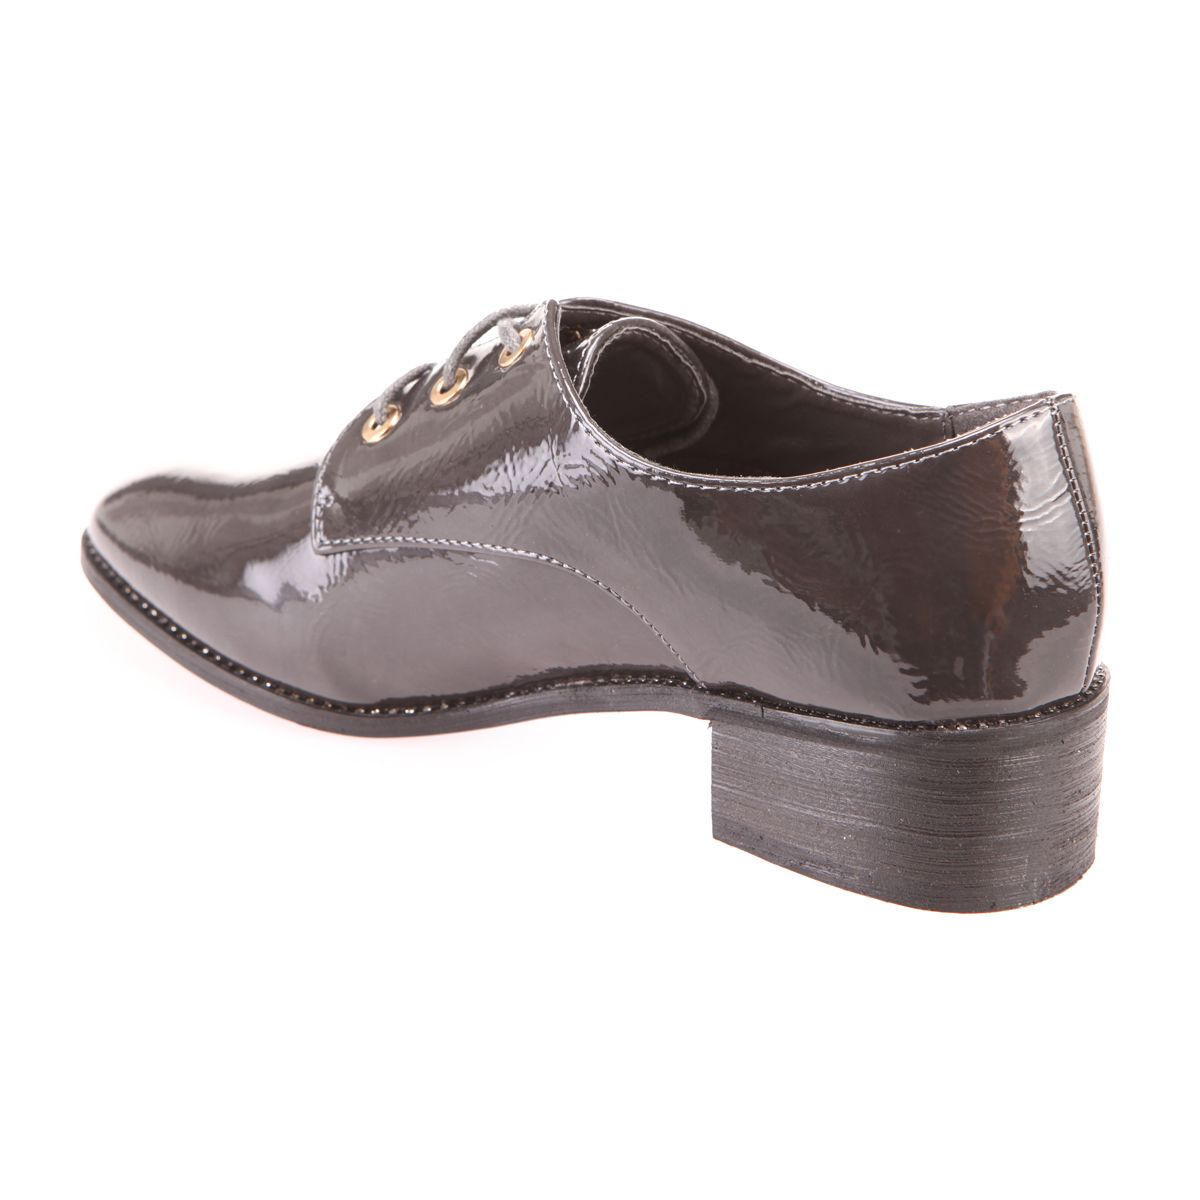 Derbies vernis gris à talon carré